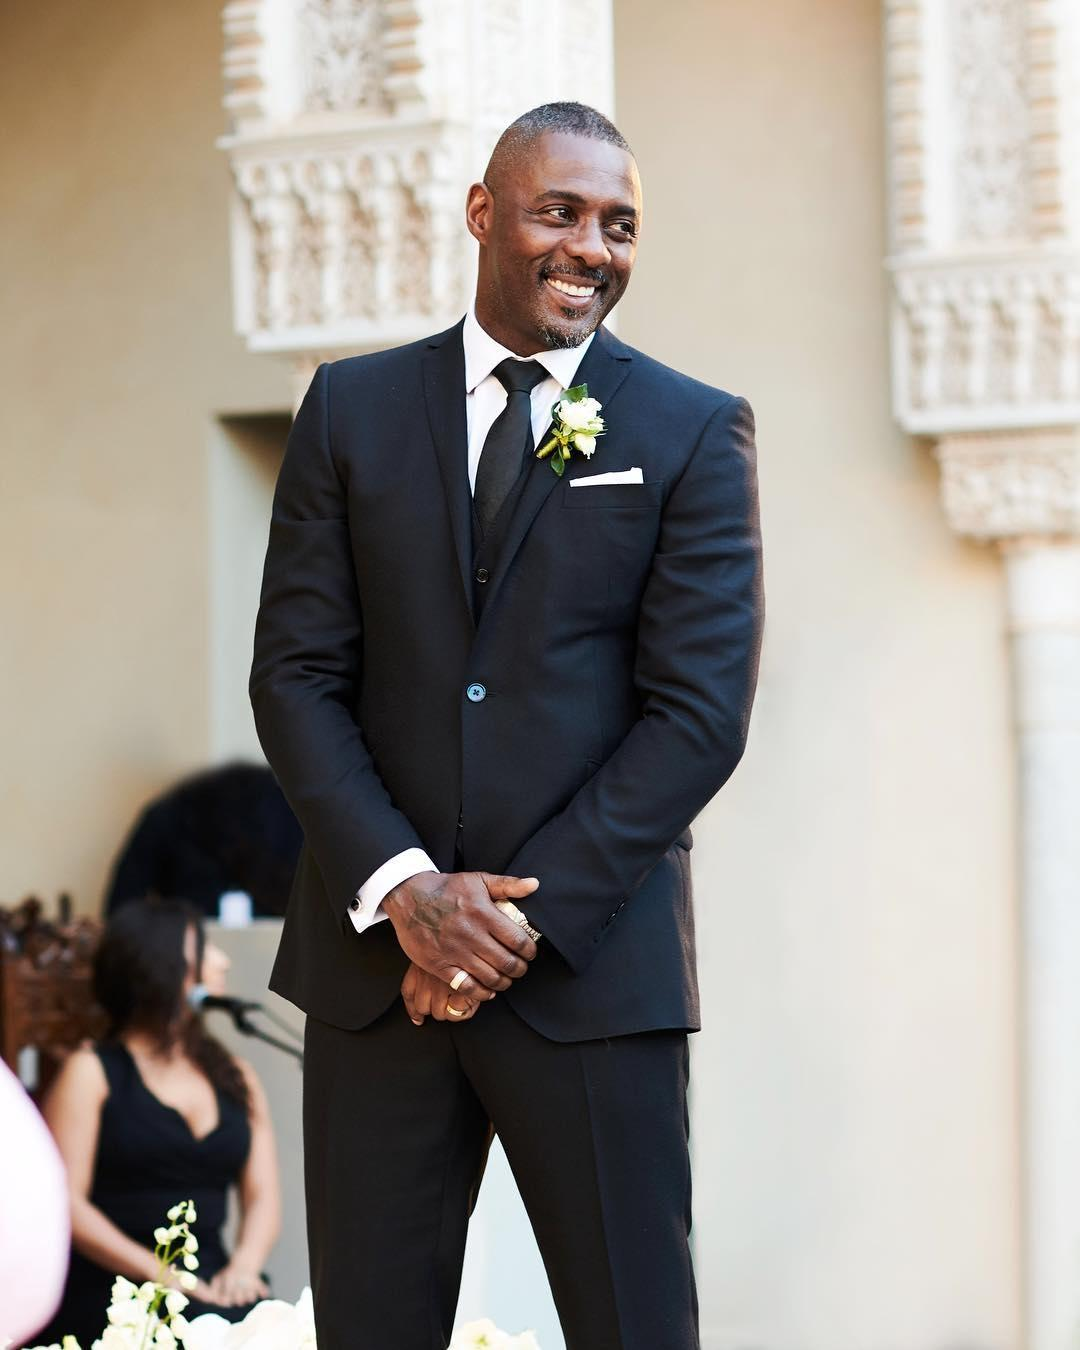 Idris Elba's Wedding to Sabrina Dhowre in Morocco - Wedding Story and Pictures